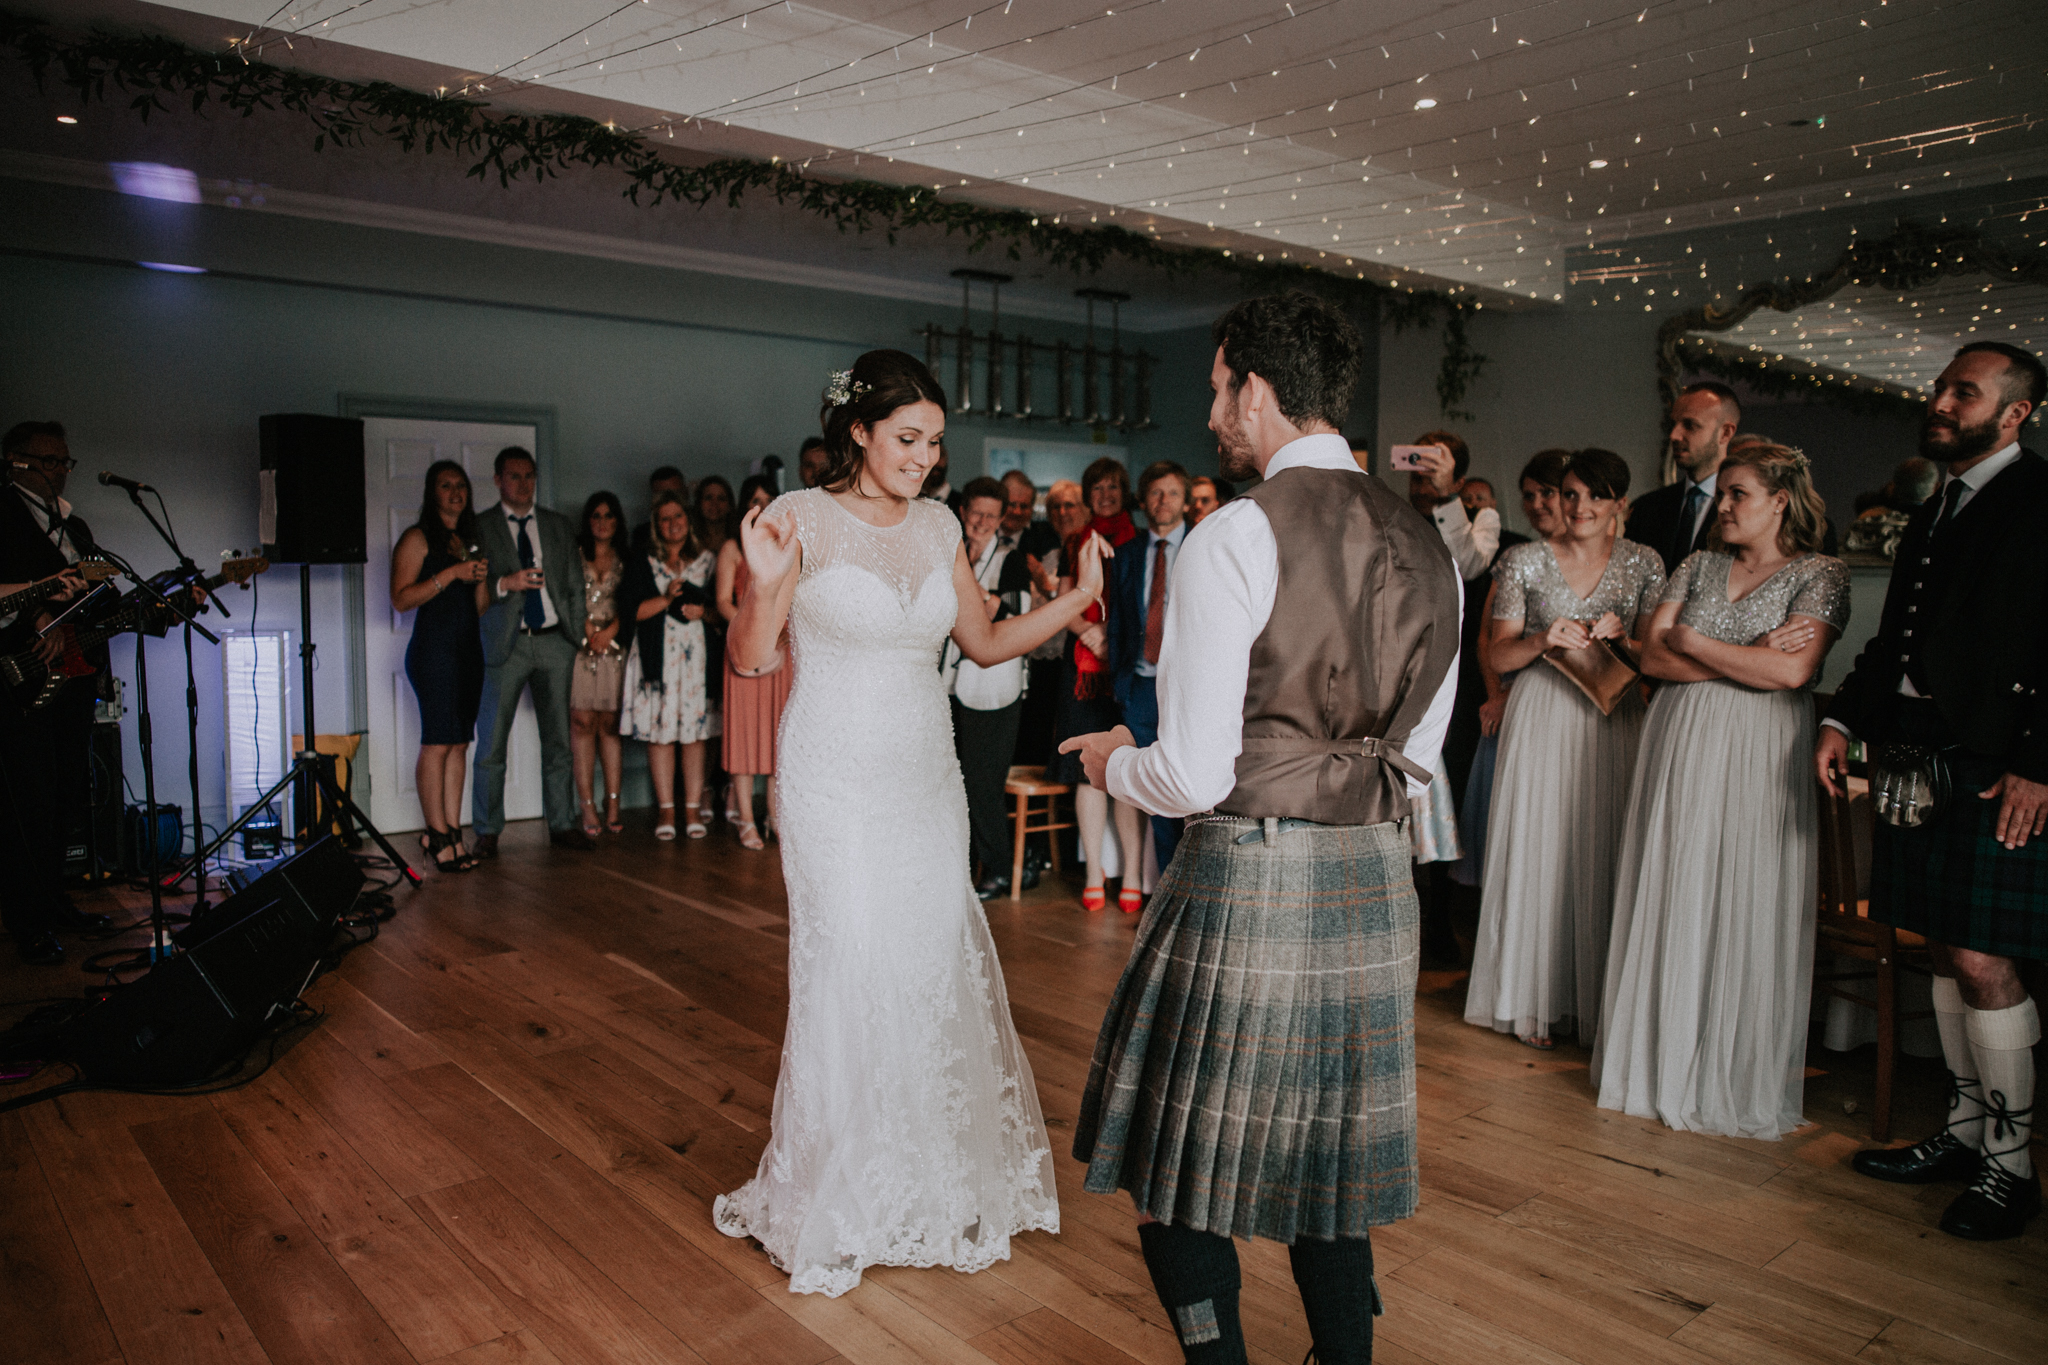 The newlyweds are dancing their first dance as a husband and wife